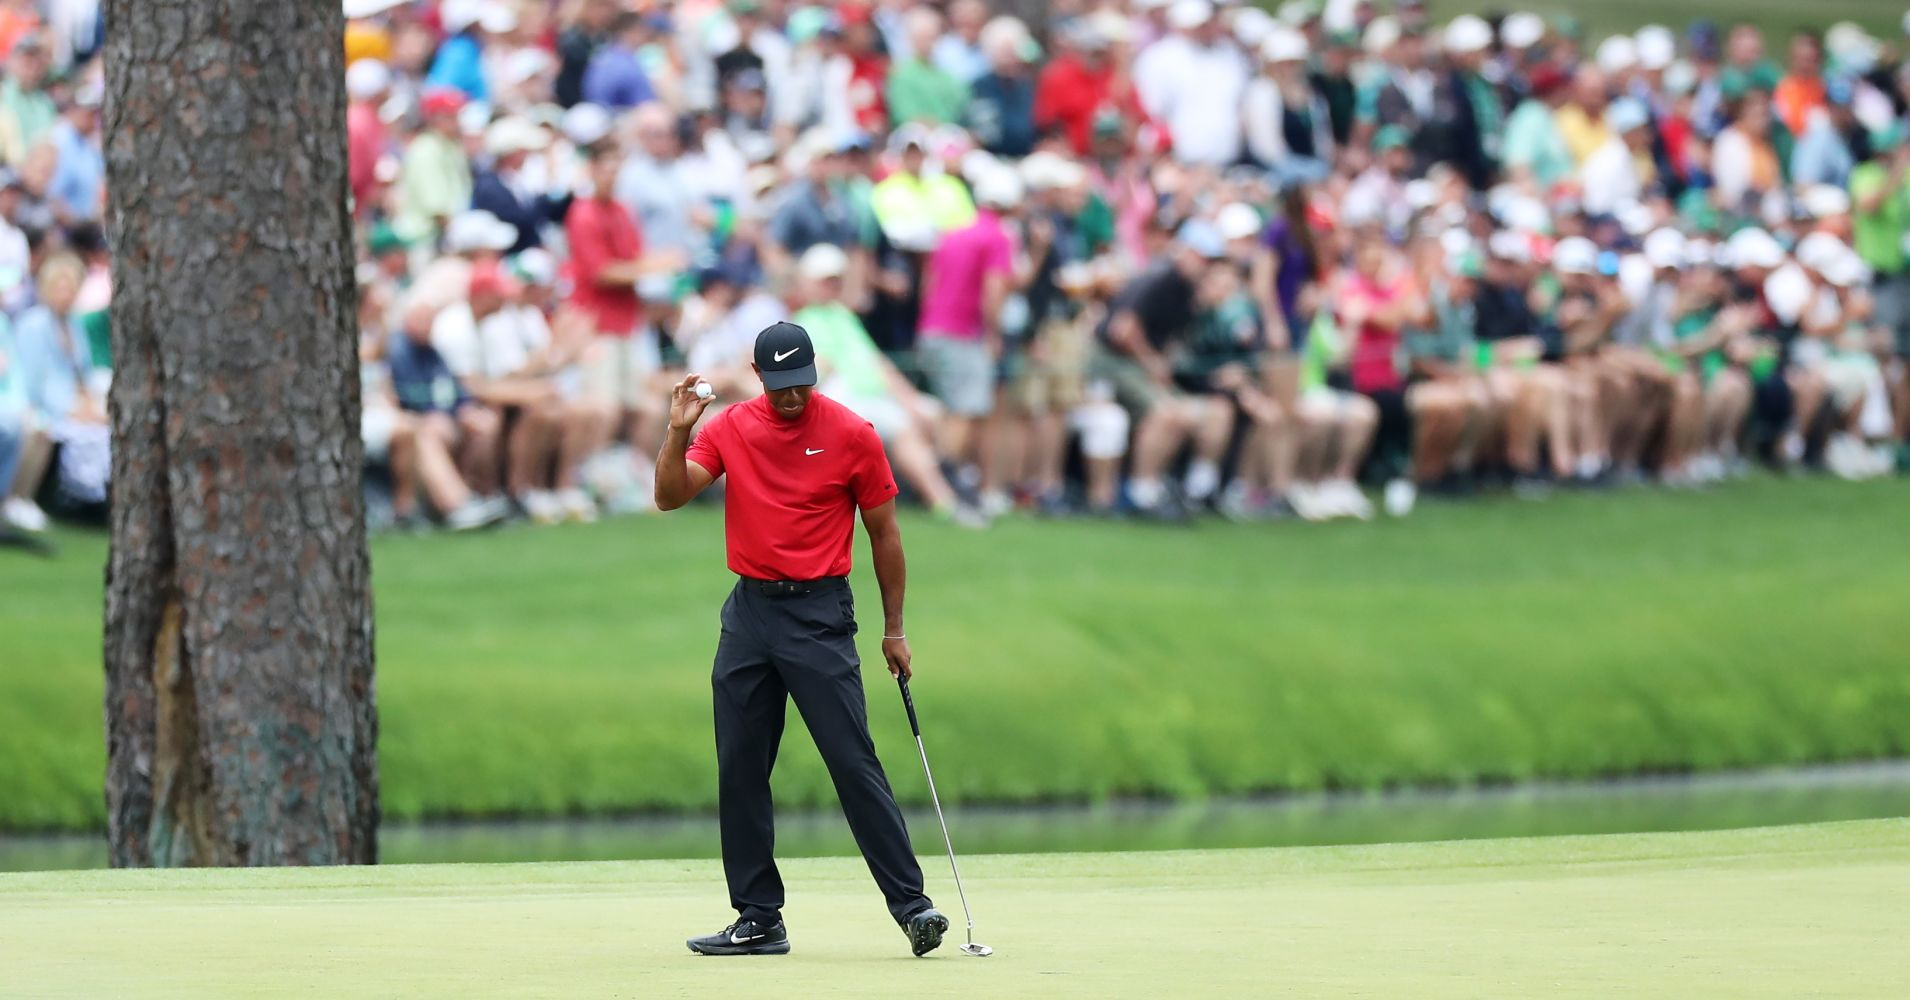 Tiger Woods of the United States reacts on the 15th green during the final round of the Masters at Augusta National Golf Club on April 14, 2019 in Augusta, Georgia.